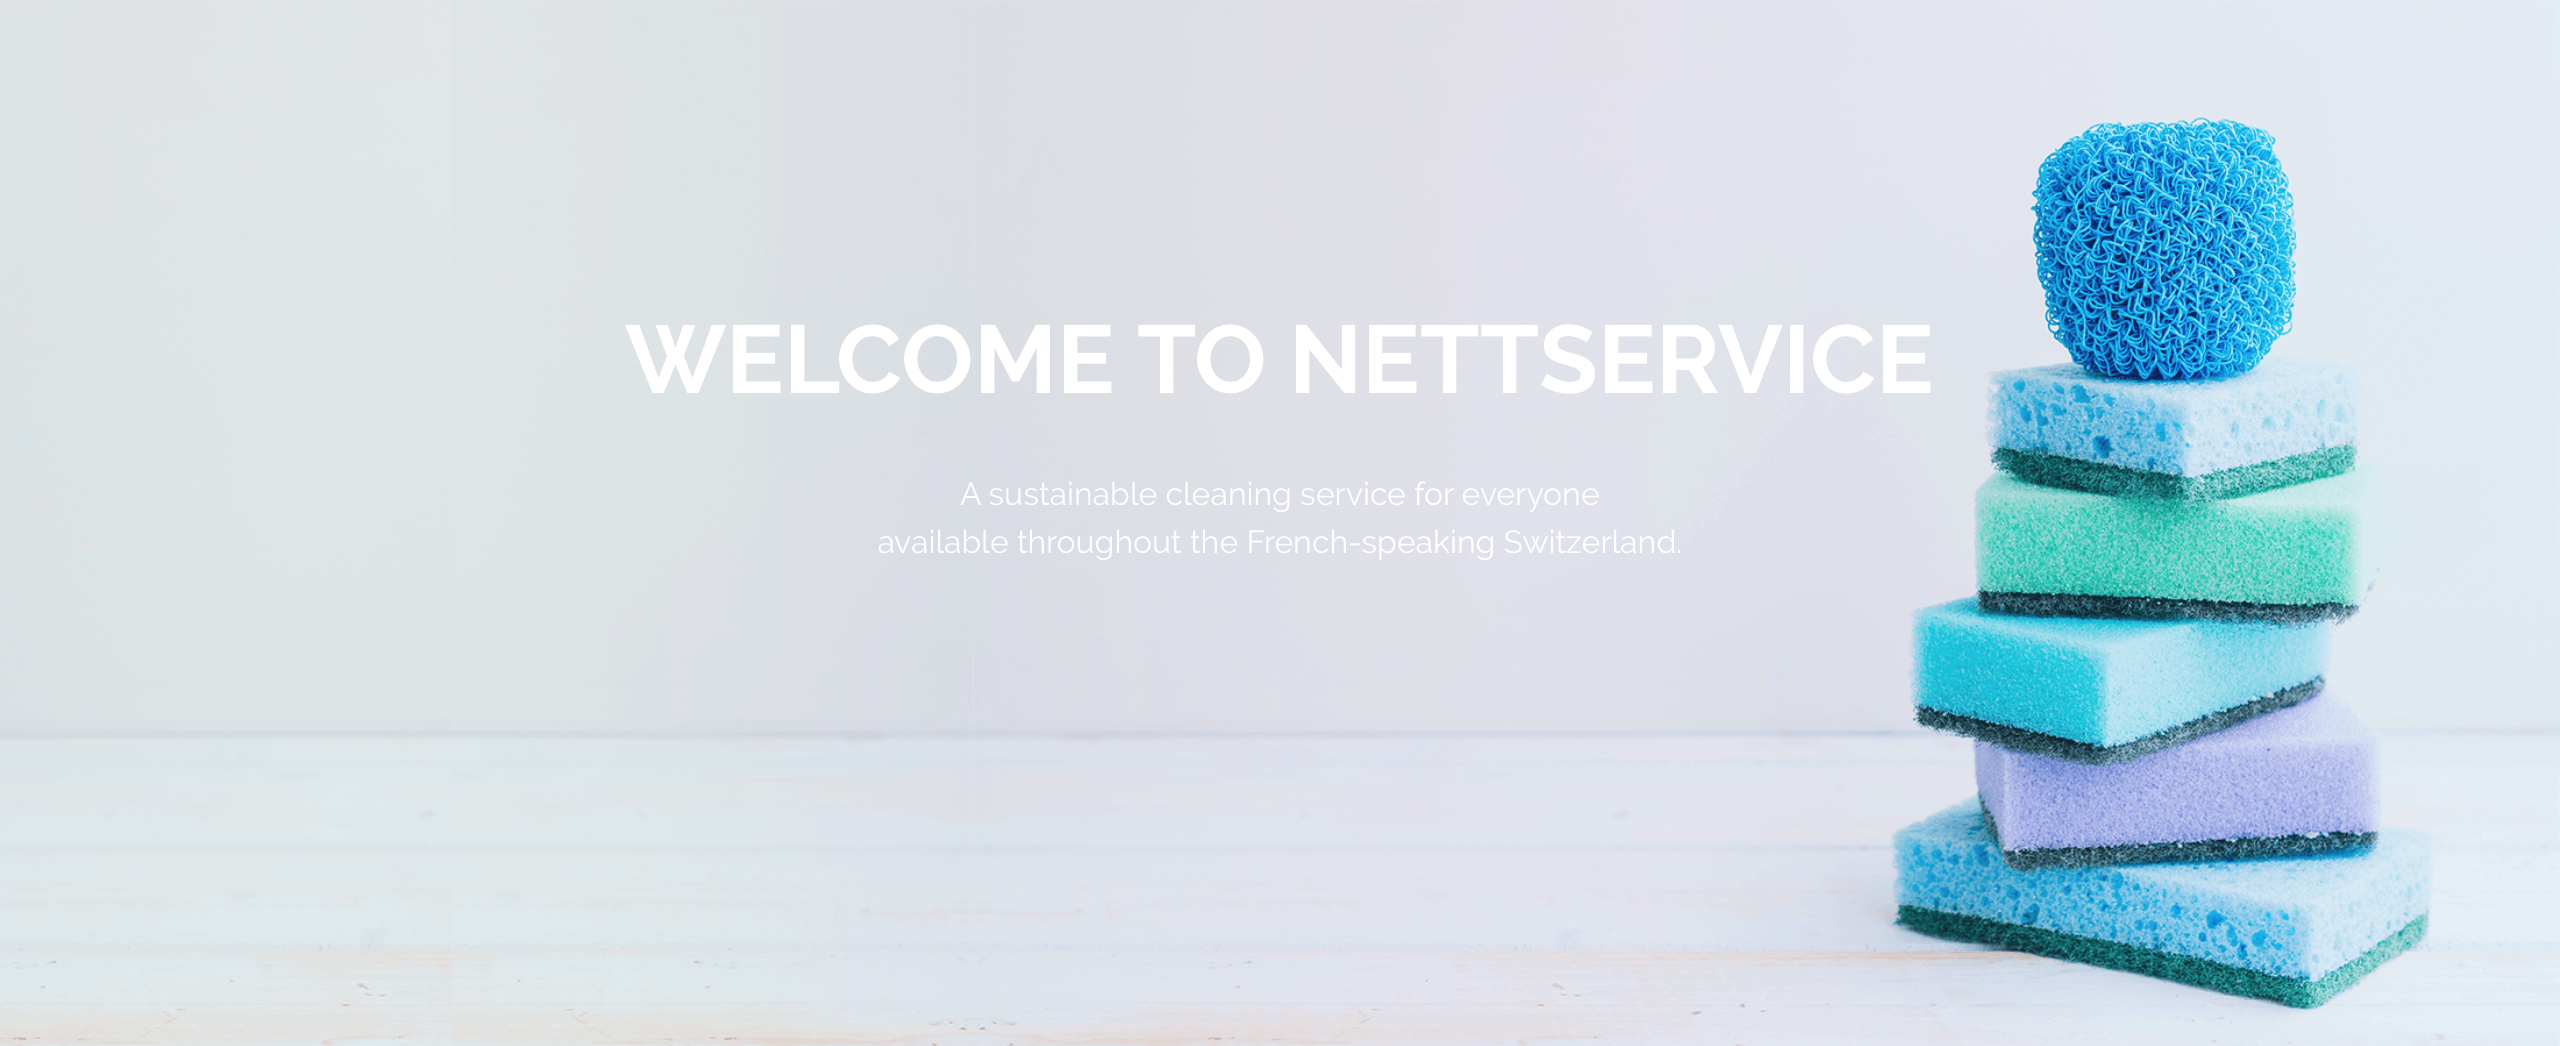 Welcome to NettService, the cleaning service that cares as much about the planet as it does about its customers.